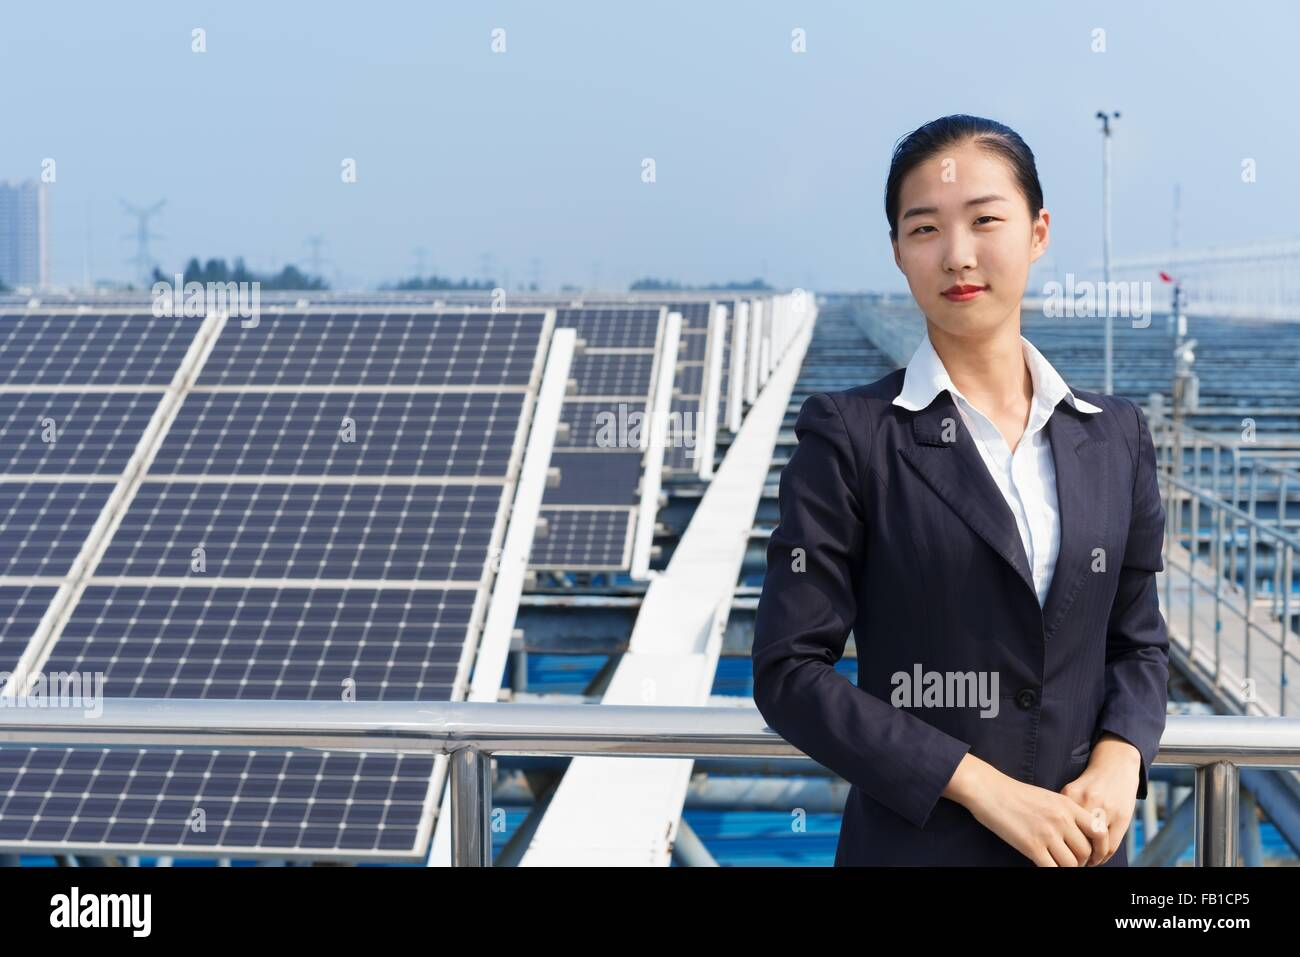 Businesswoman on roof of solar panel assembly factory, Solar Valley, Dezhou, China - Stock Image